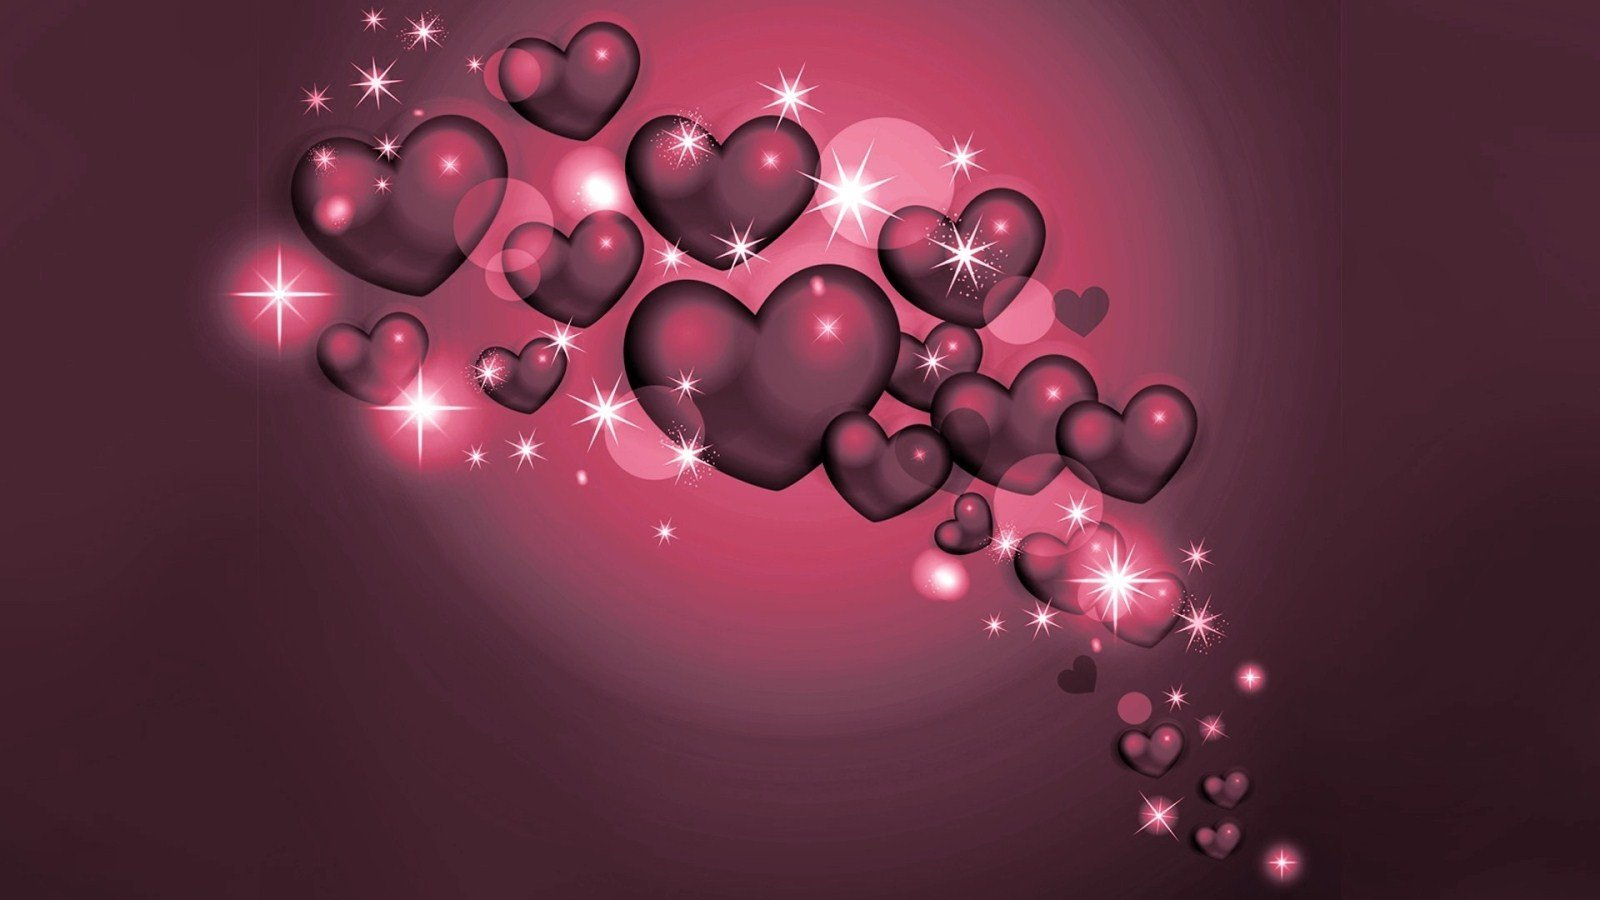 Love Wallpaper Hd 3d : 3D Love Wallpaper - WallpaperSafari